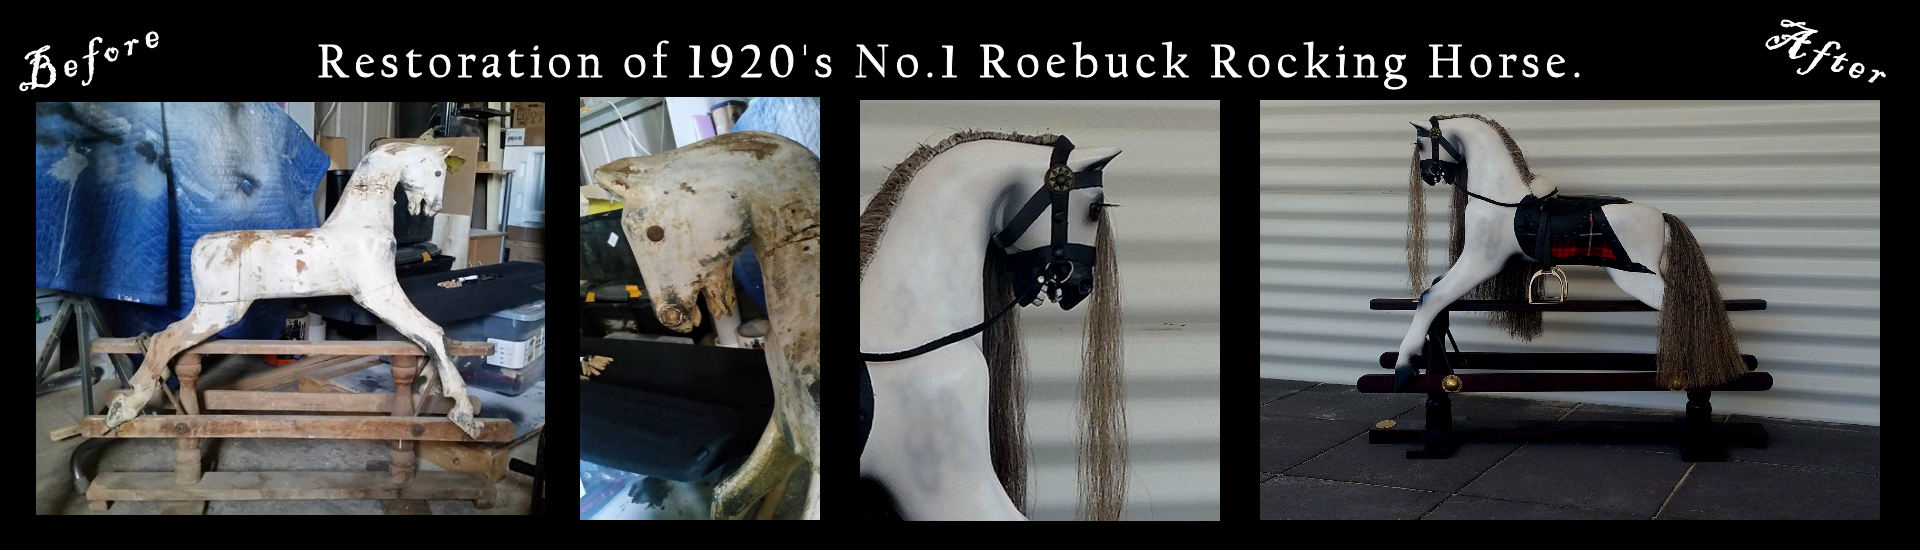 Roebuck Rocking Horse Restoration